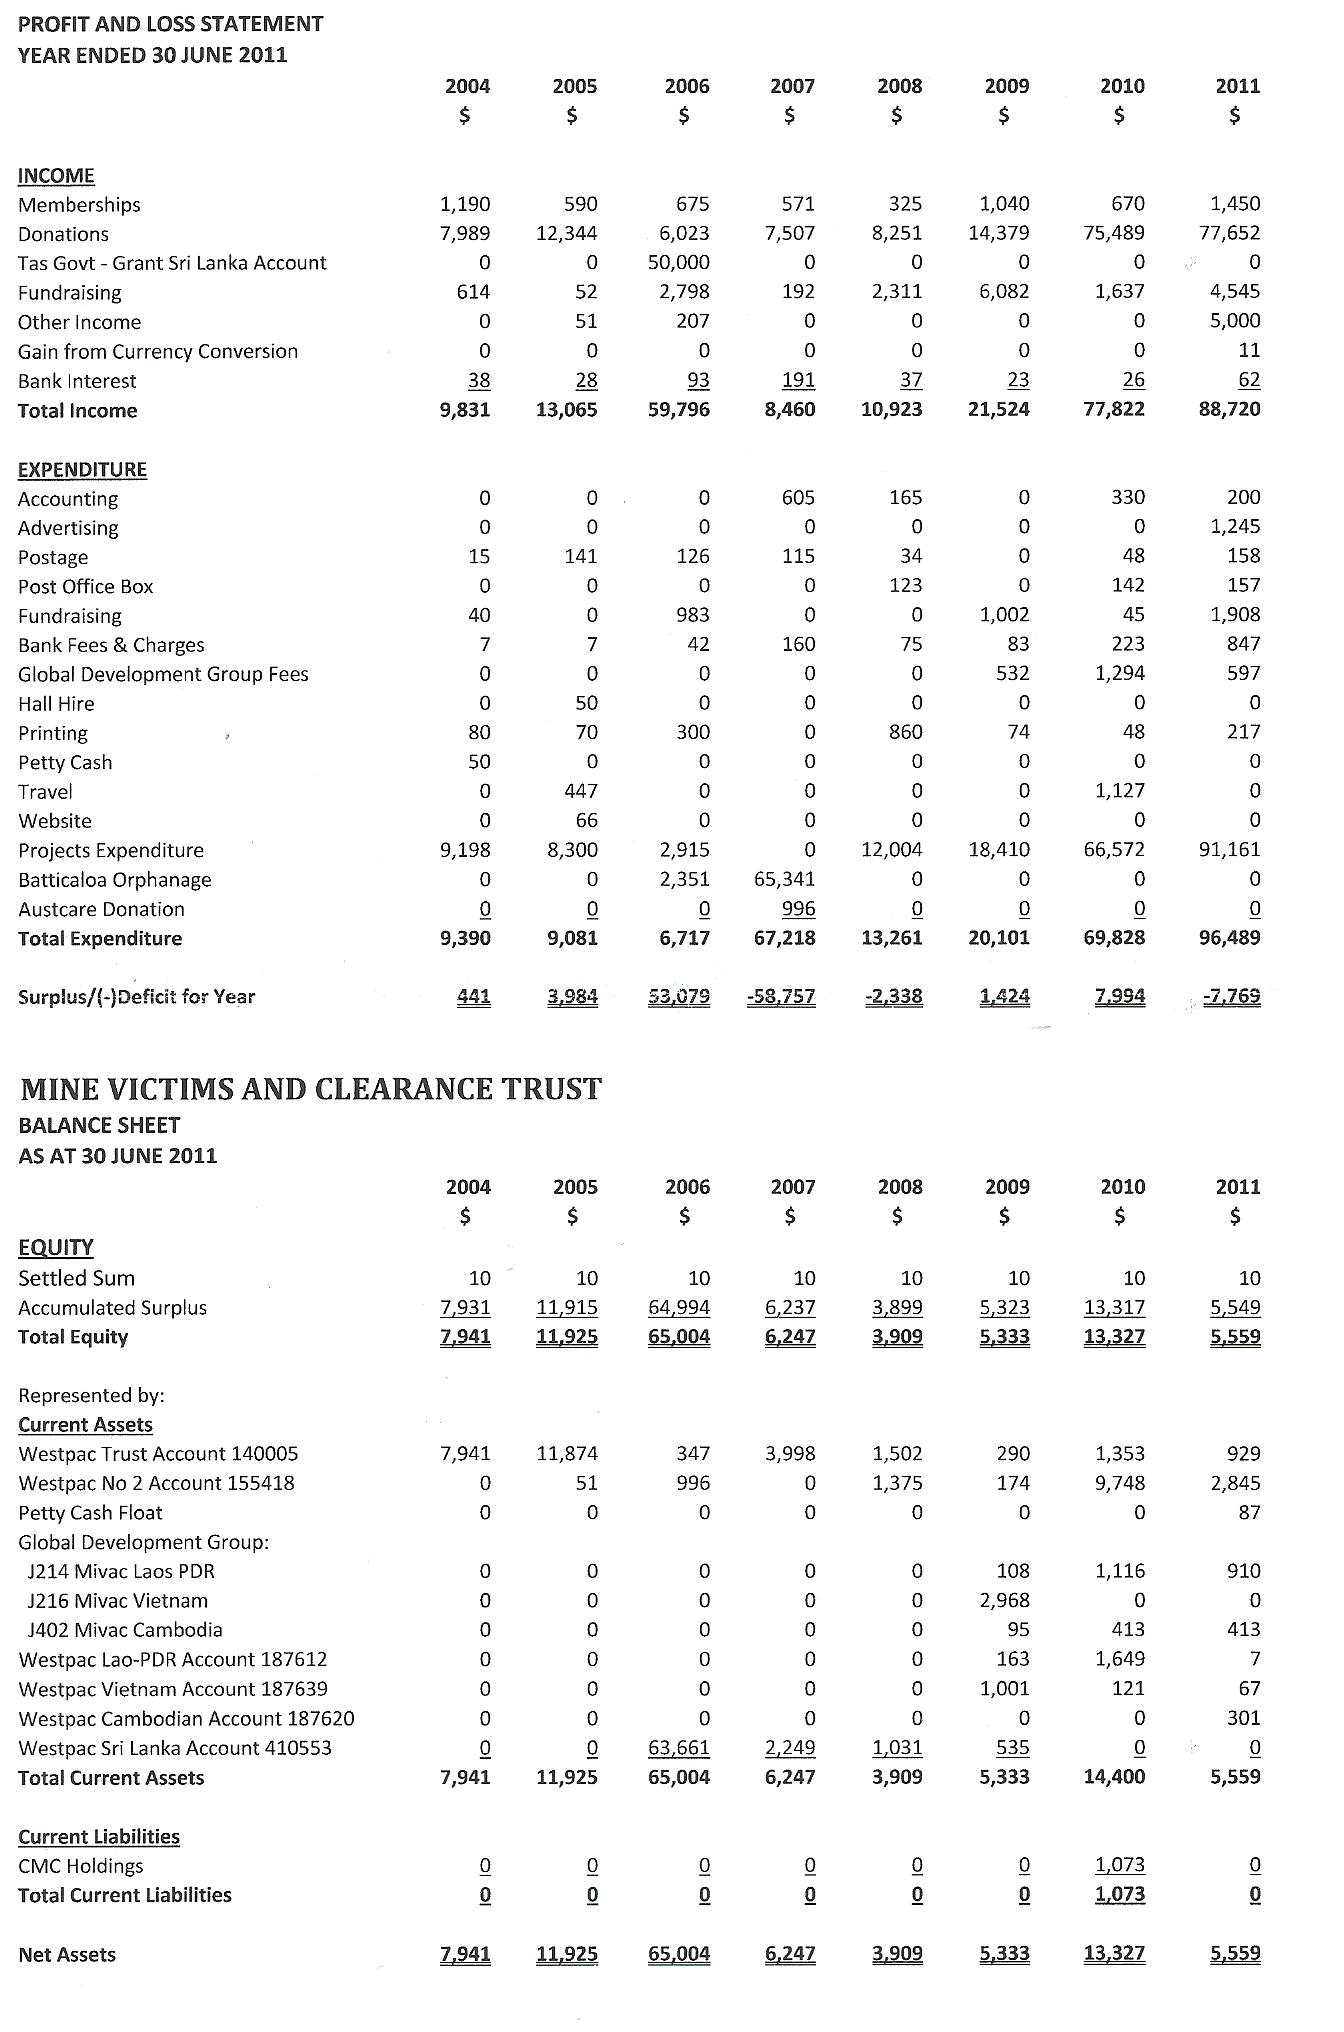 balance sheet and annual report 1 everglades country club limited abn 86 000 196 501 everglades country club limited annual report balance sheet for the year ended 30.